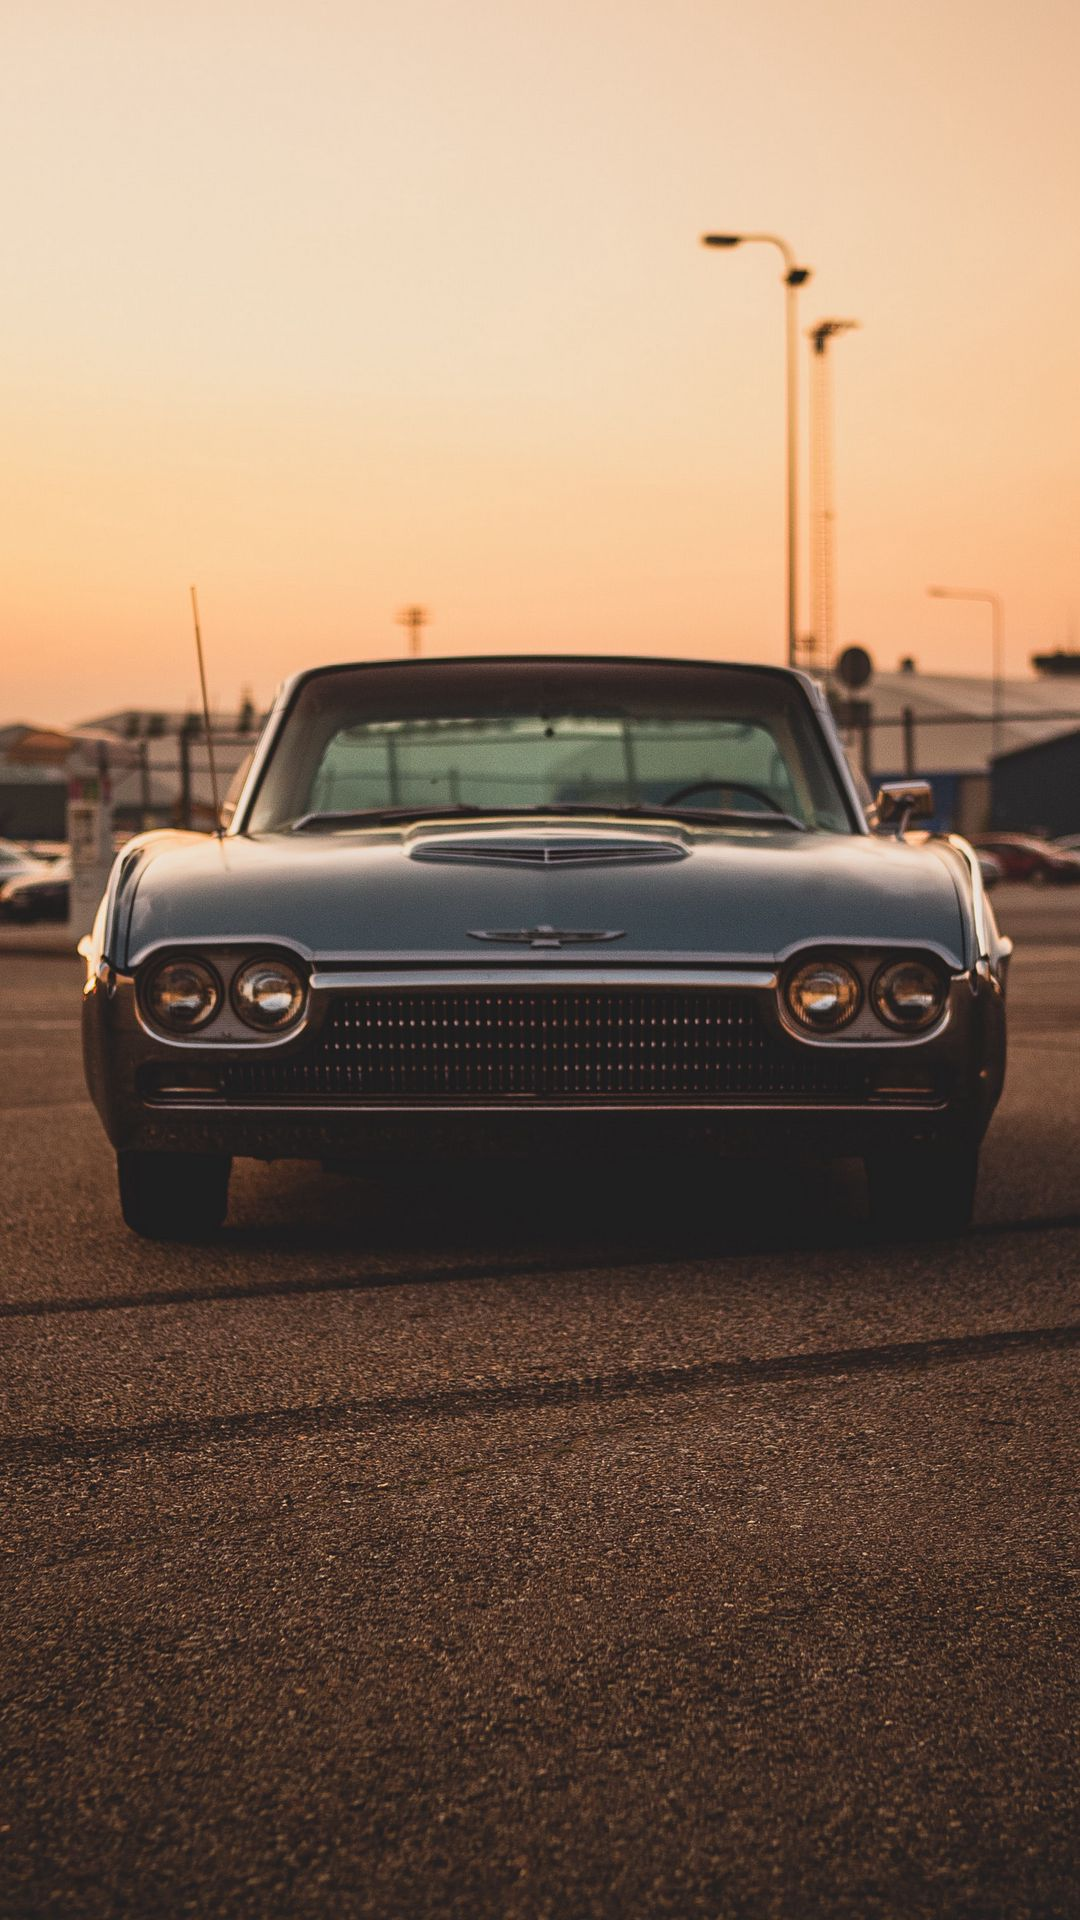 Ford Thunderbird Wallpapers Download